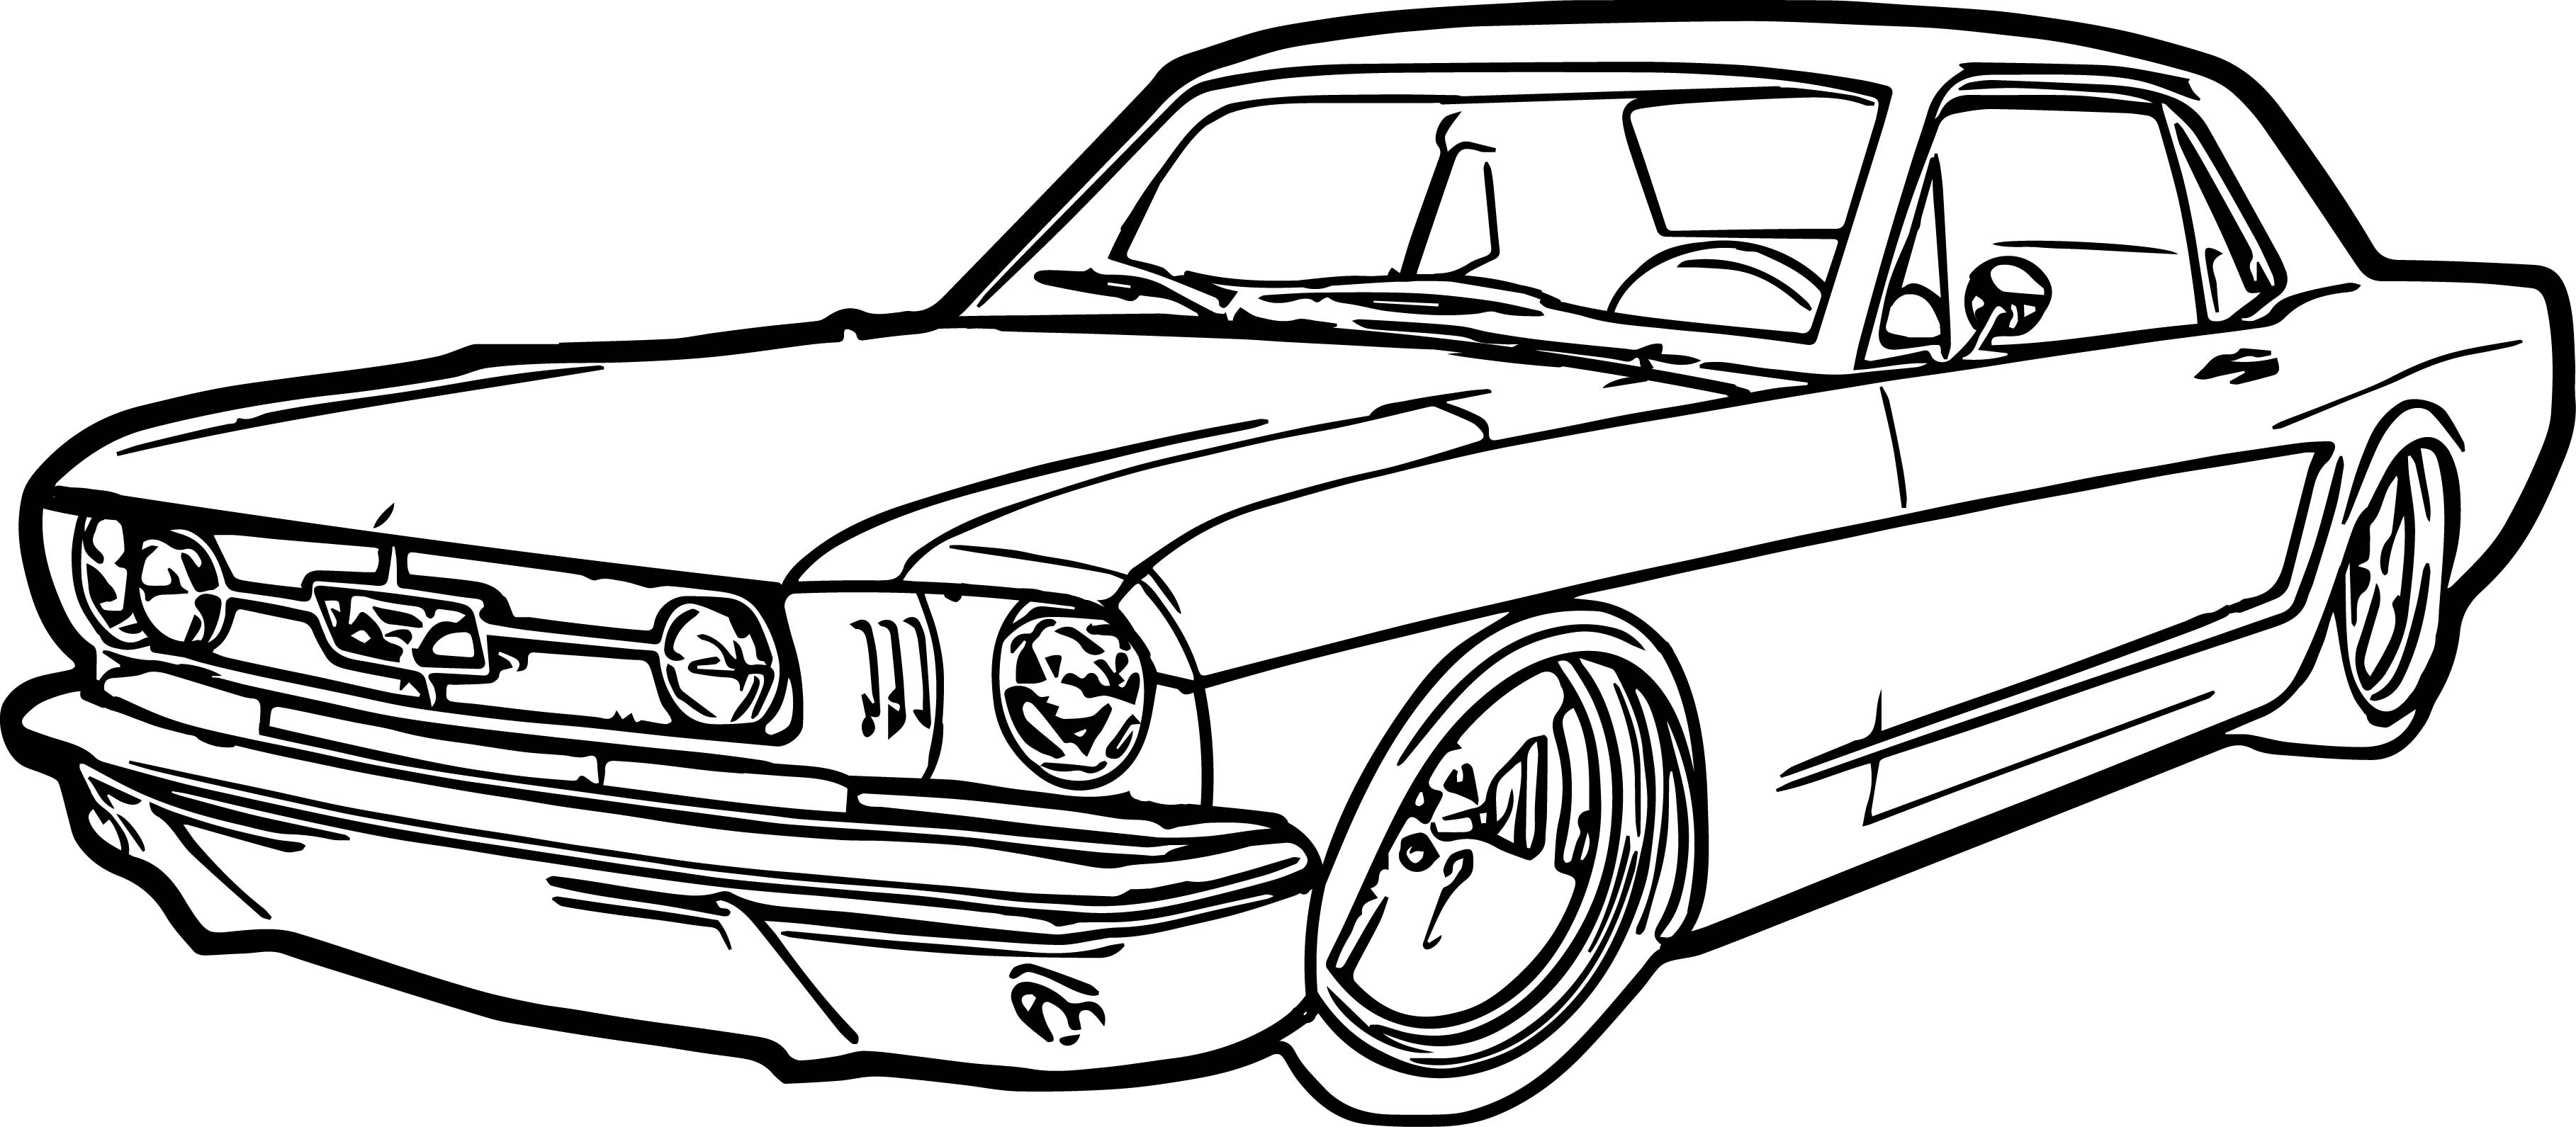 3635x1591 Ford Mustang Coloring Pages Free Free Draw To Color